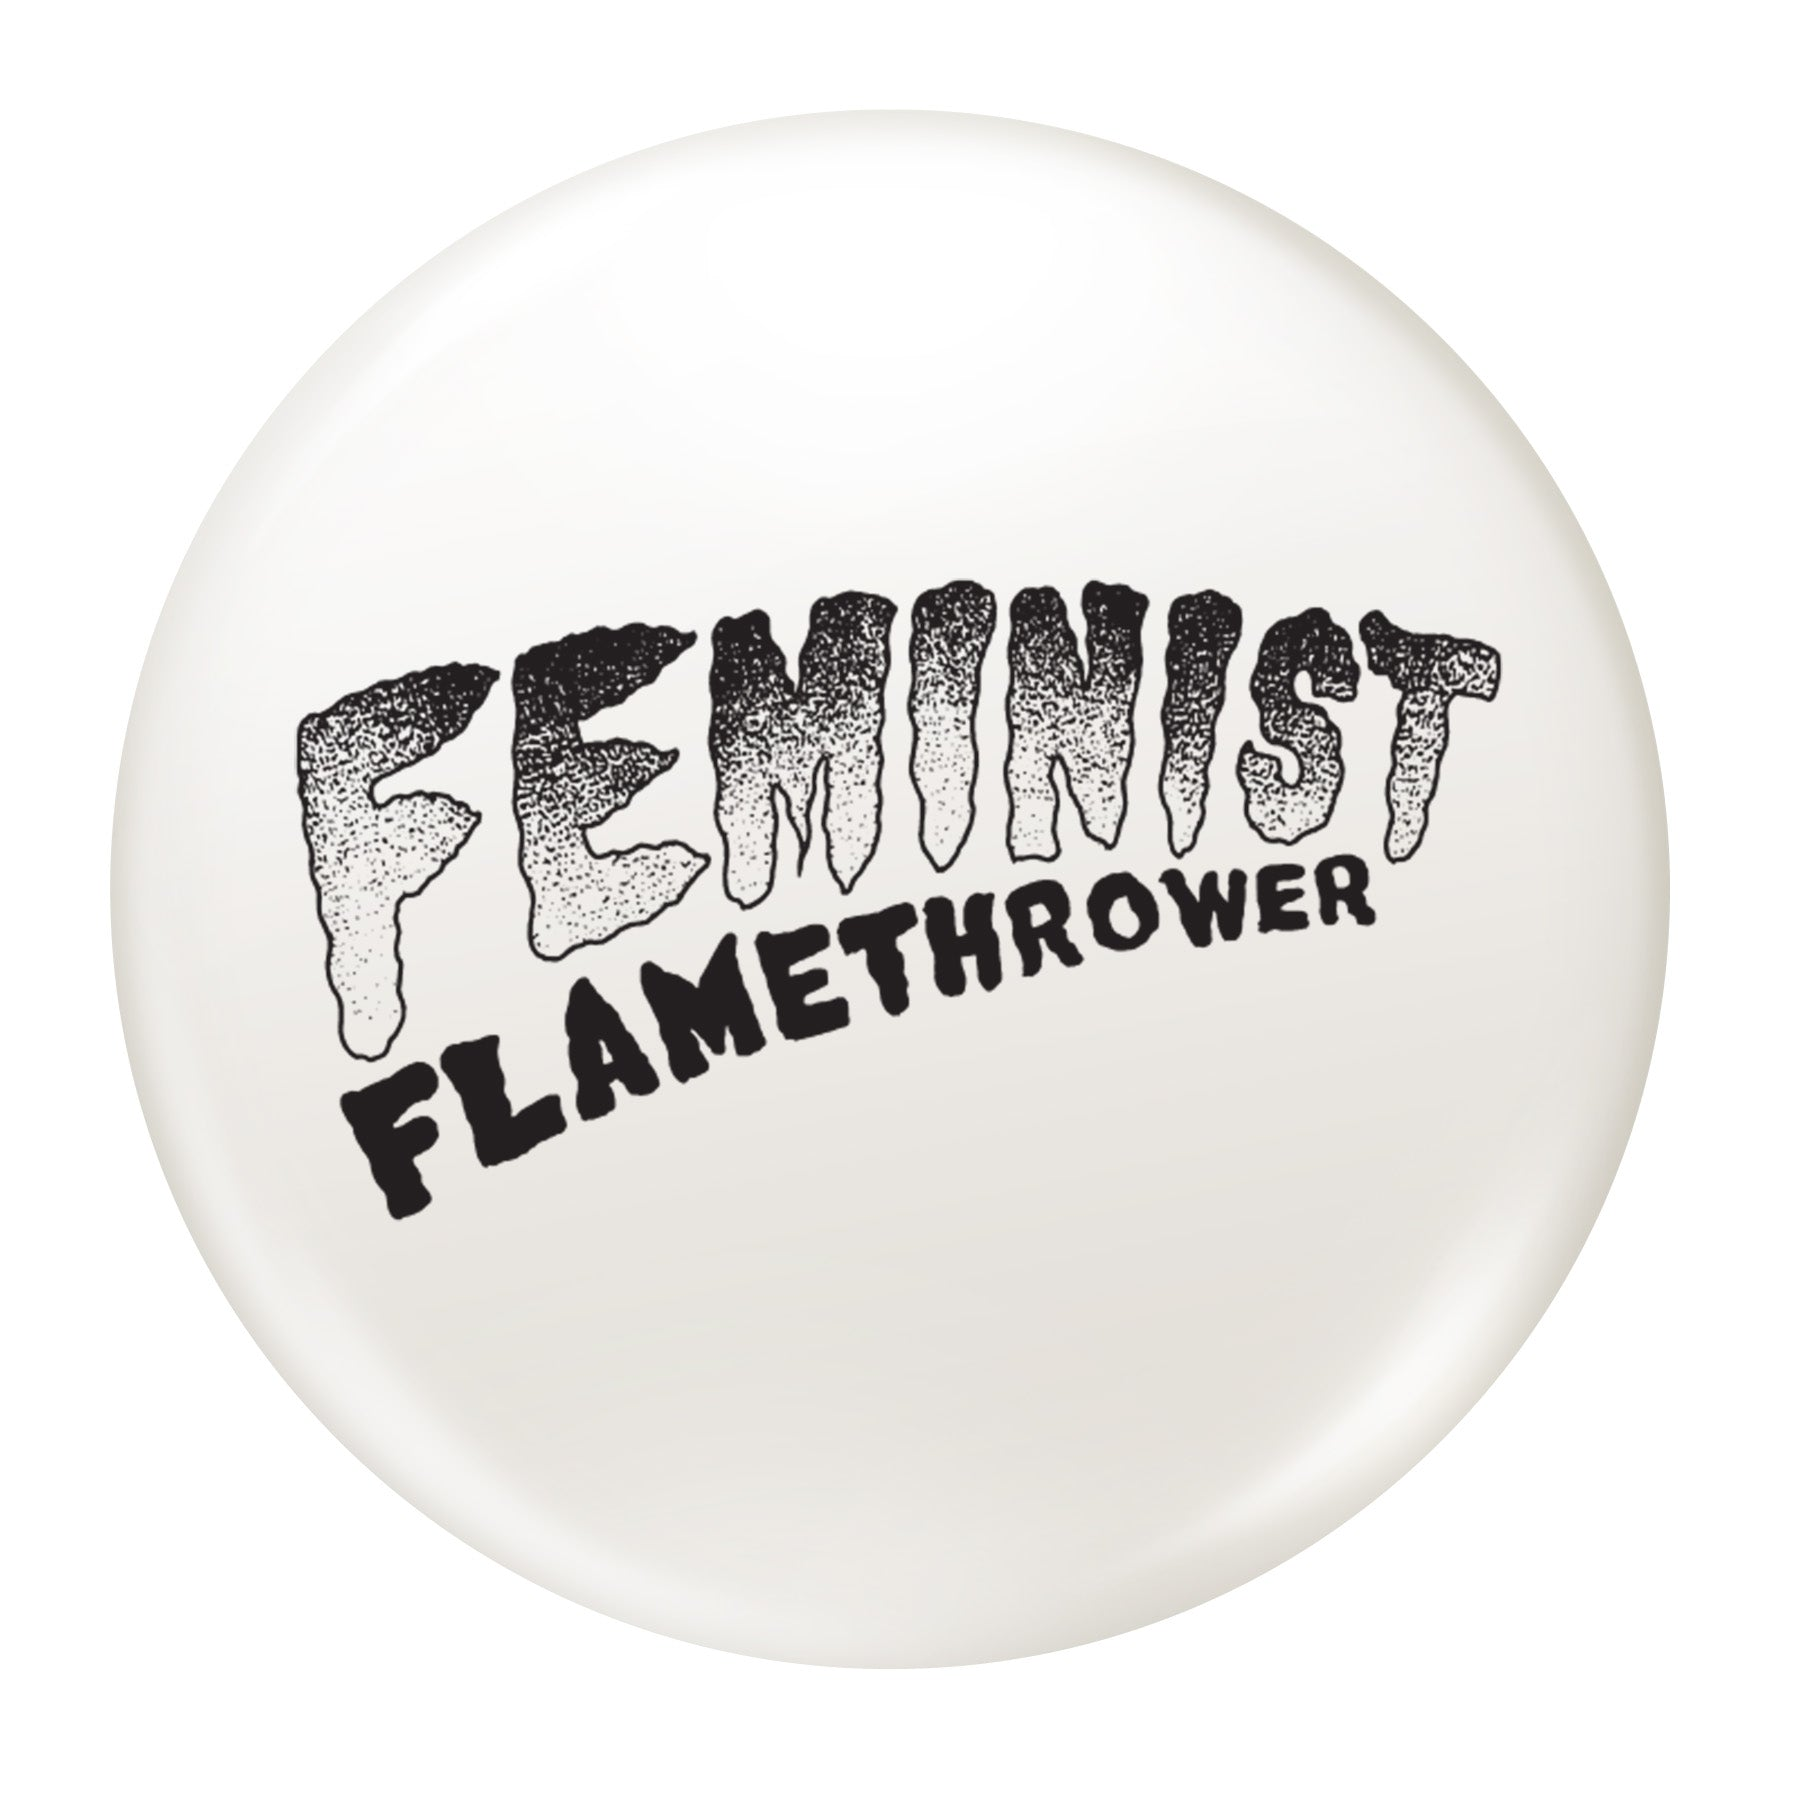 "The Drowns - Feminist Flamethrower - Black & White - 1"" Button"